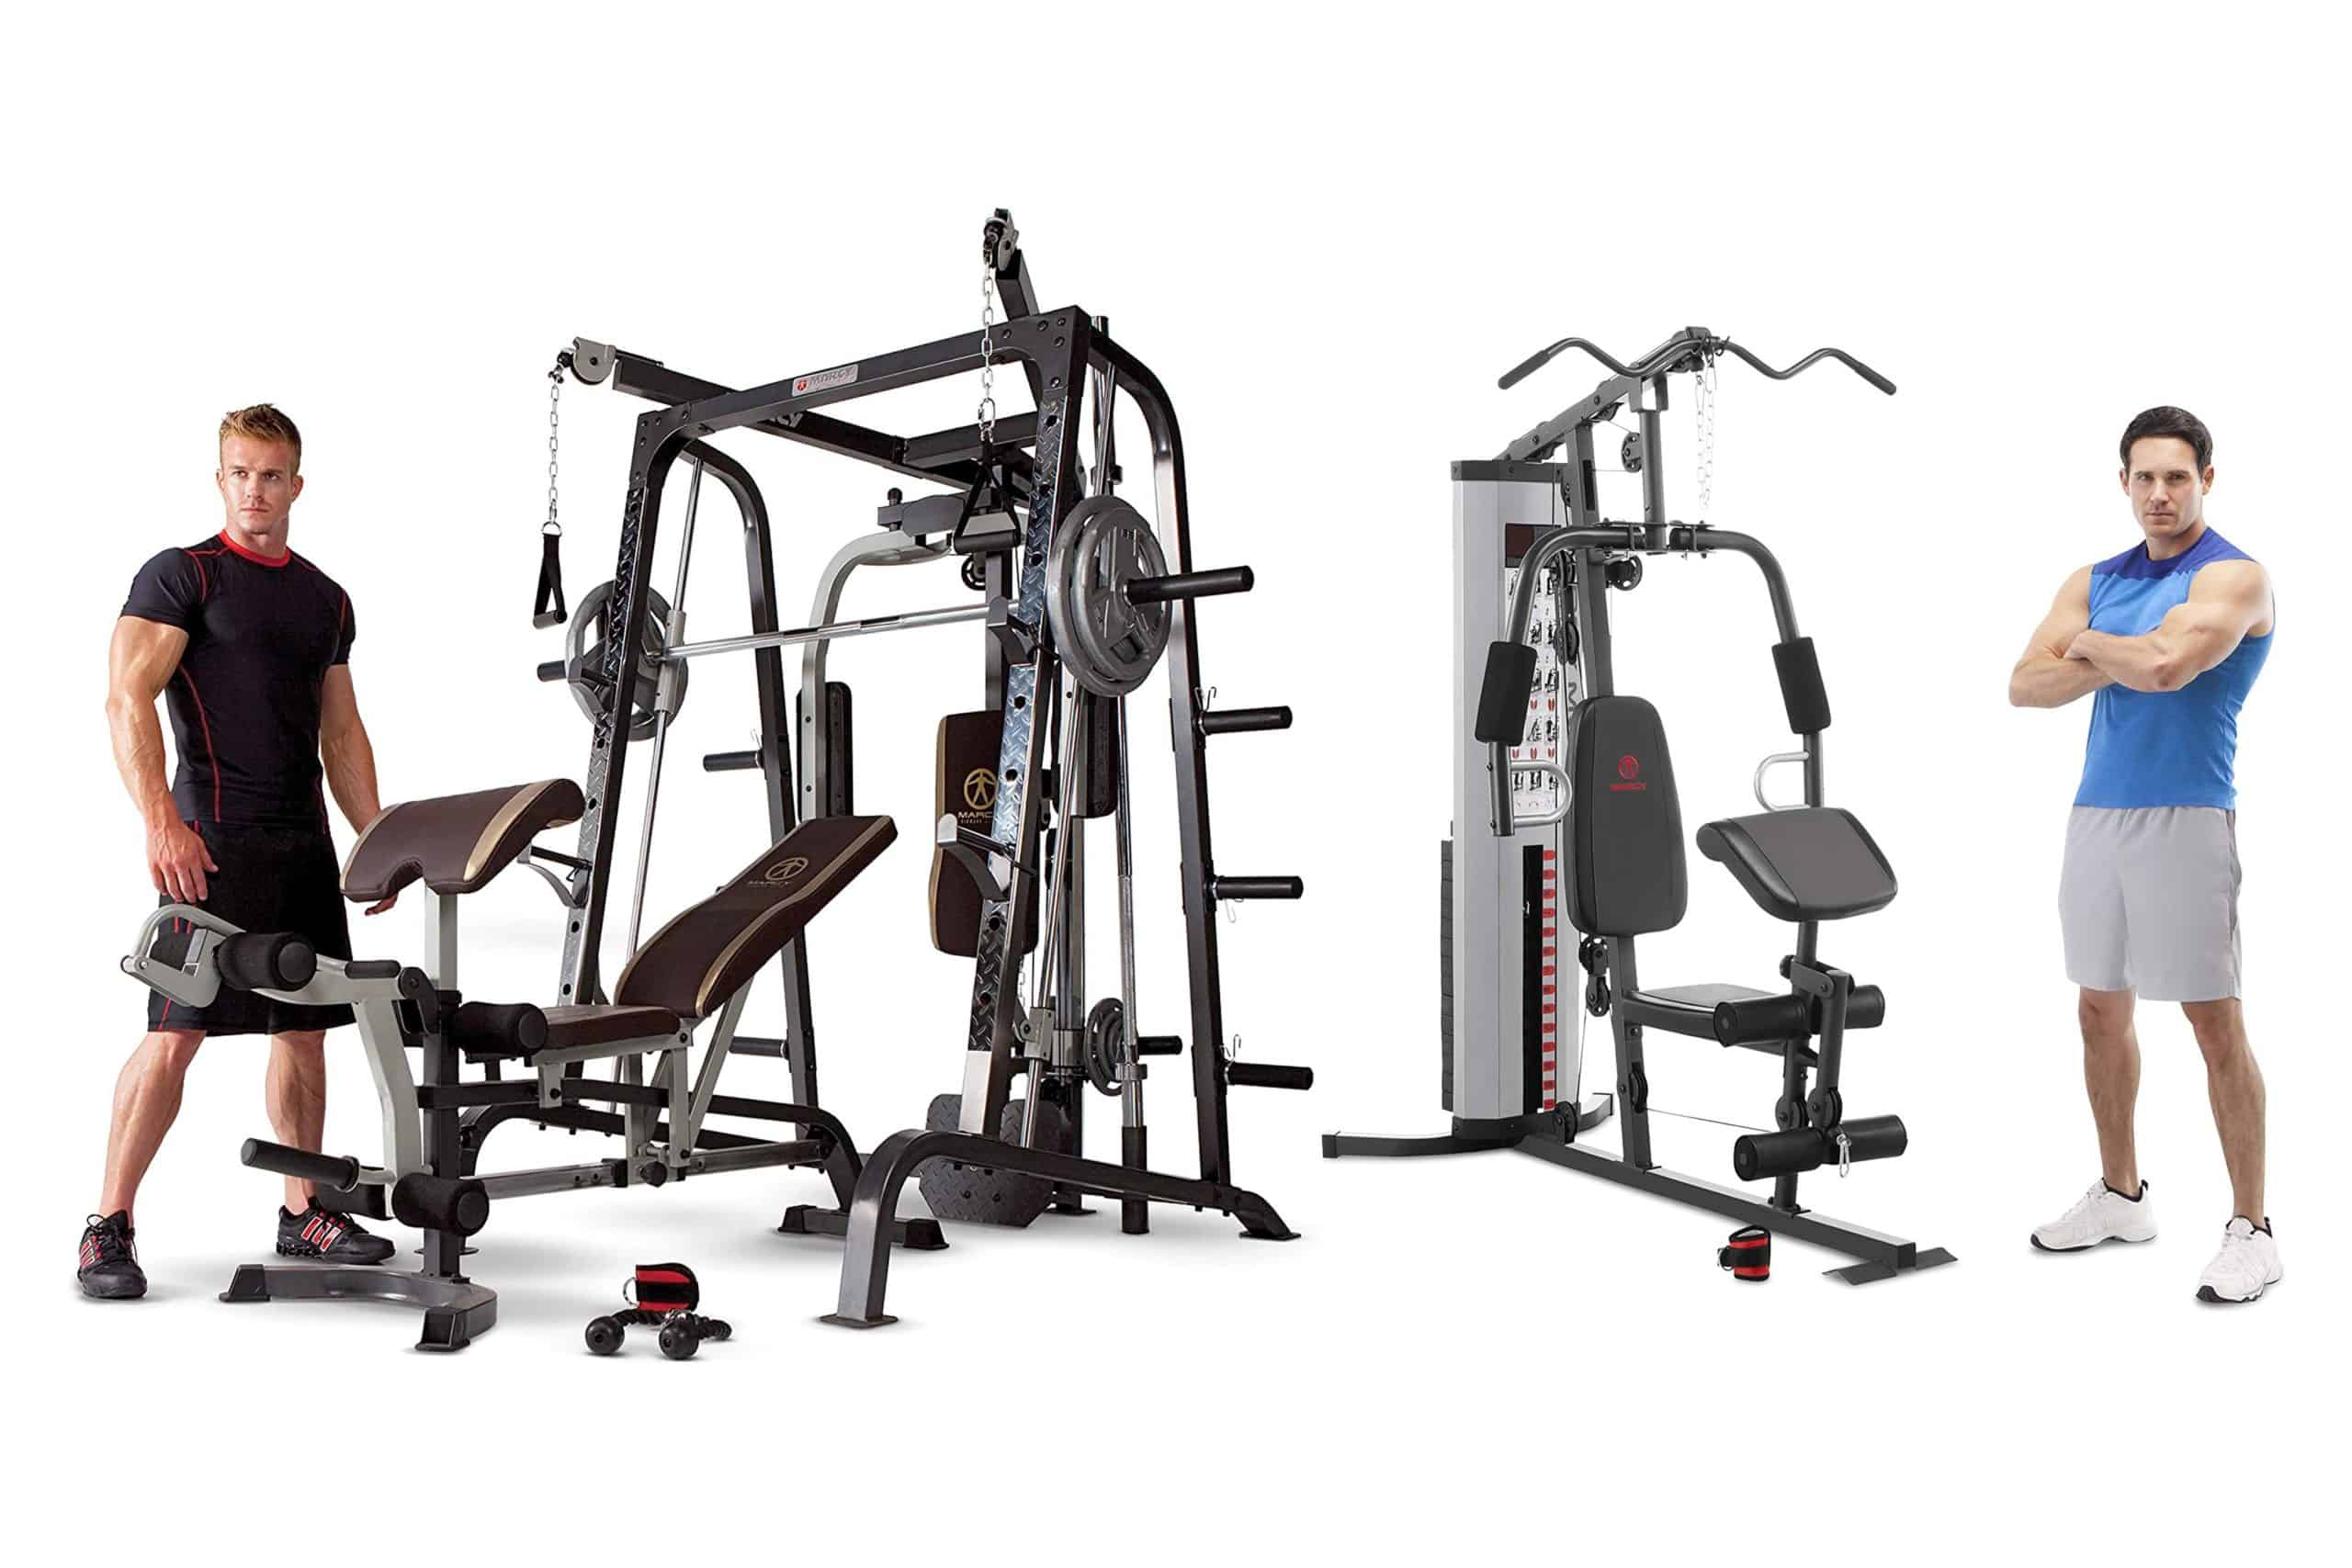 15 Best All-In-One Home Gyms: A Review